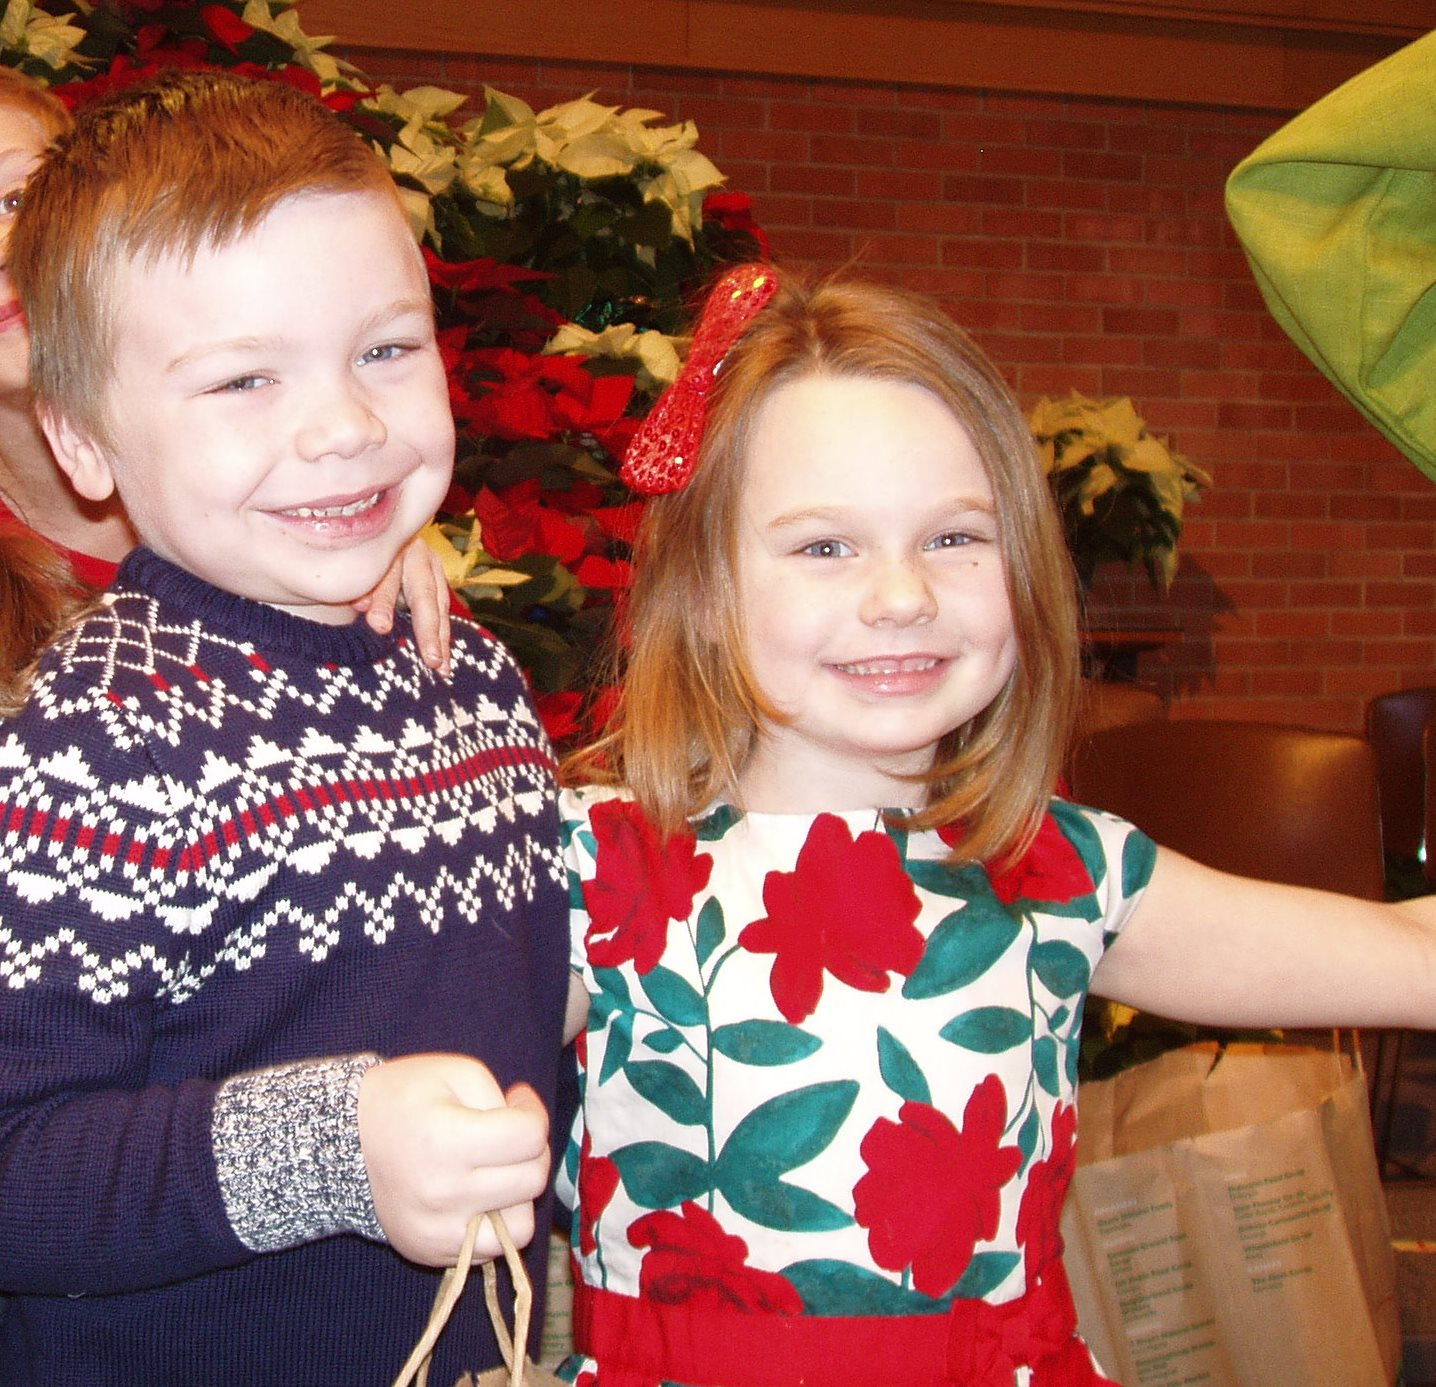 Pre-K kids full of smiles in Lead the Way to Christmas.